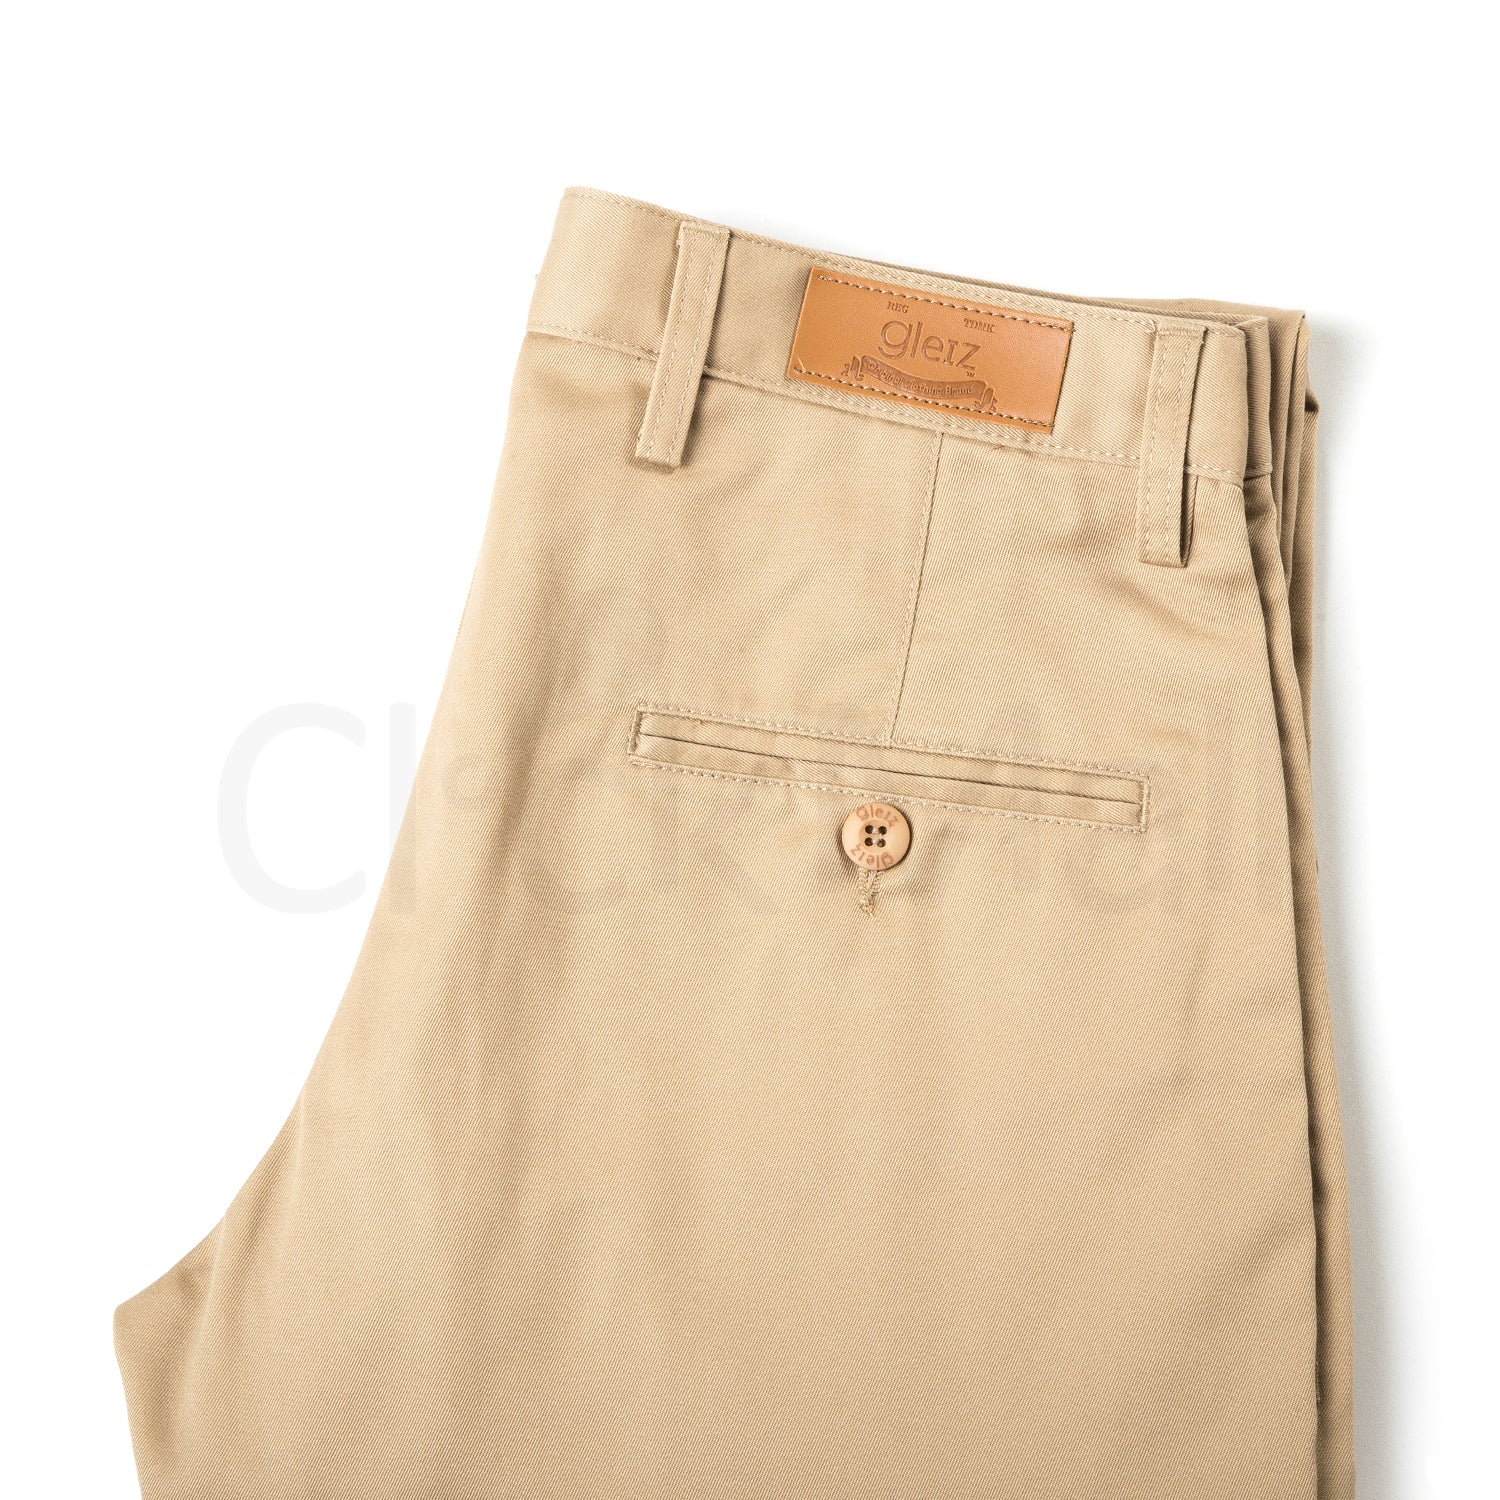 Gleiz Simple Twil - Light Khaki